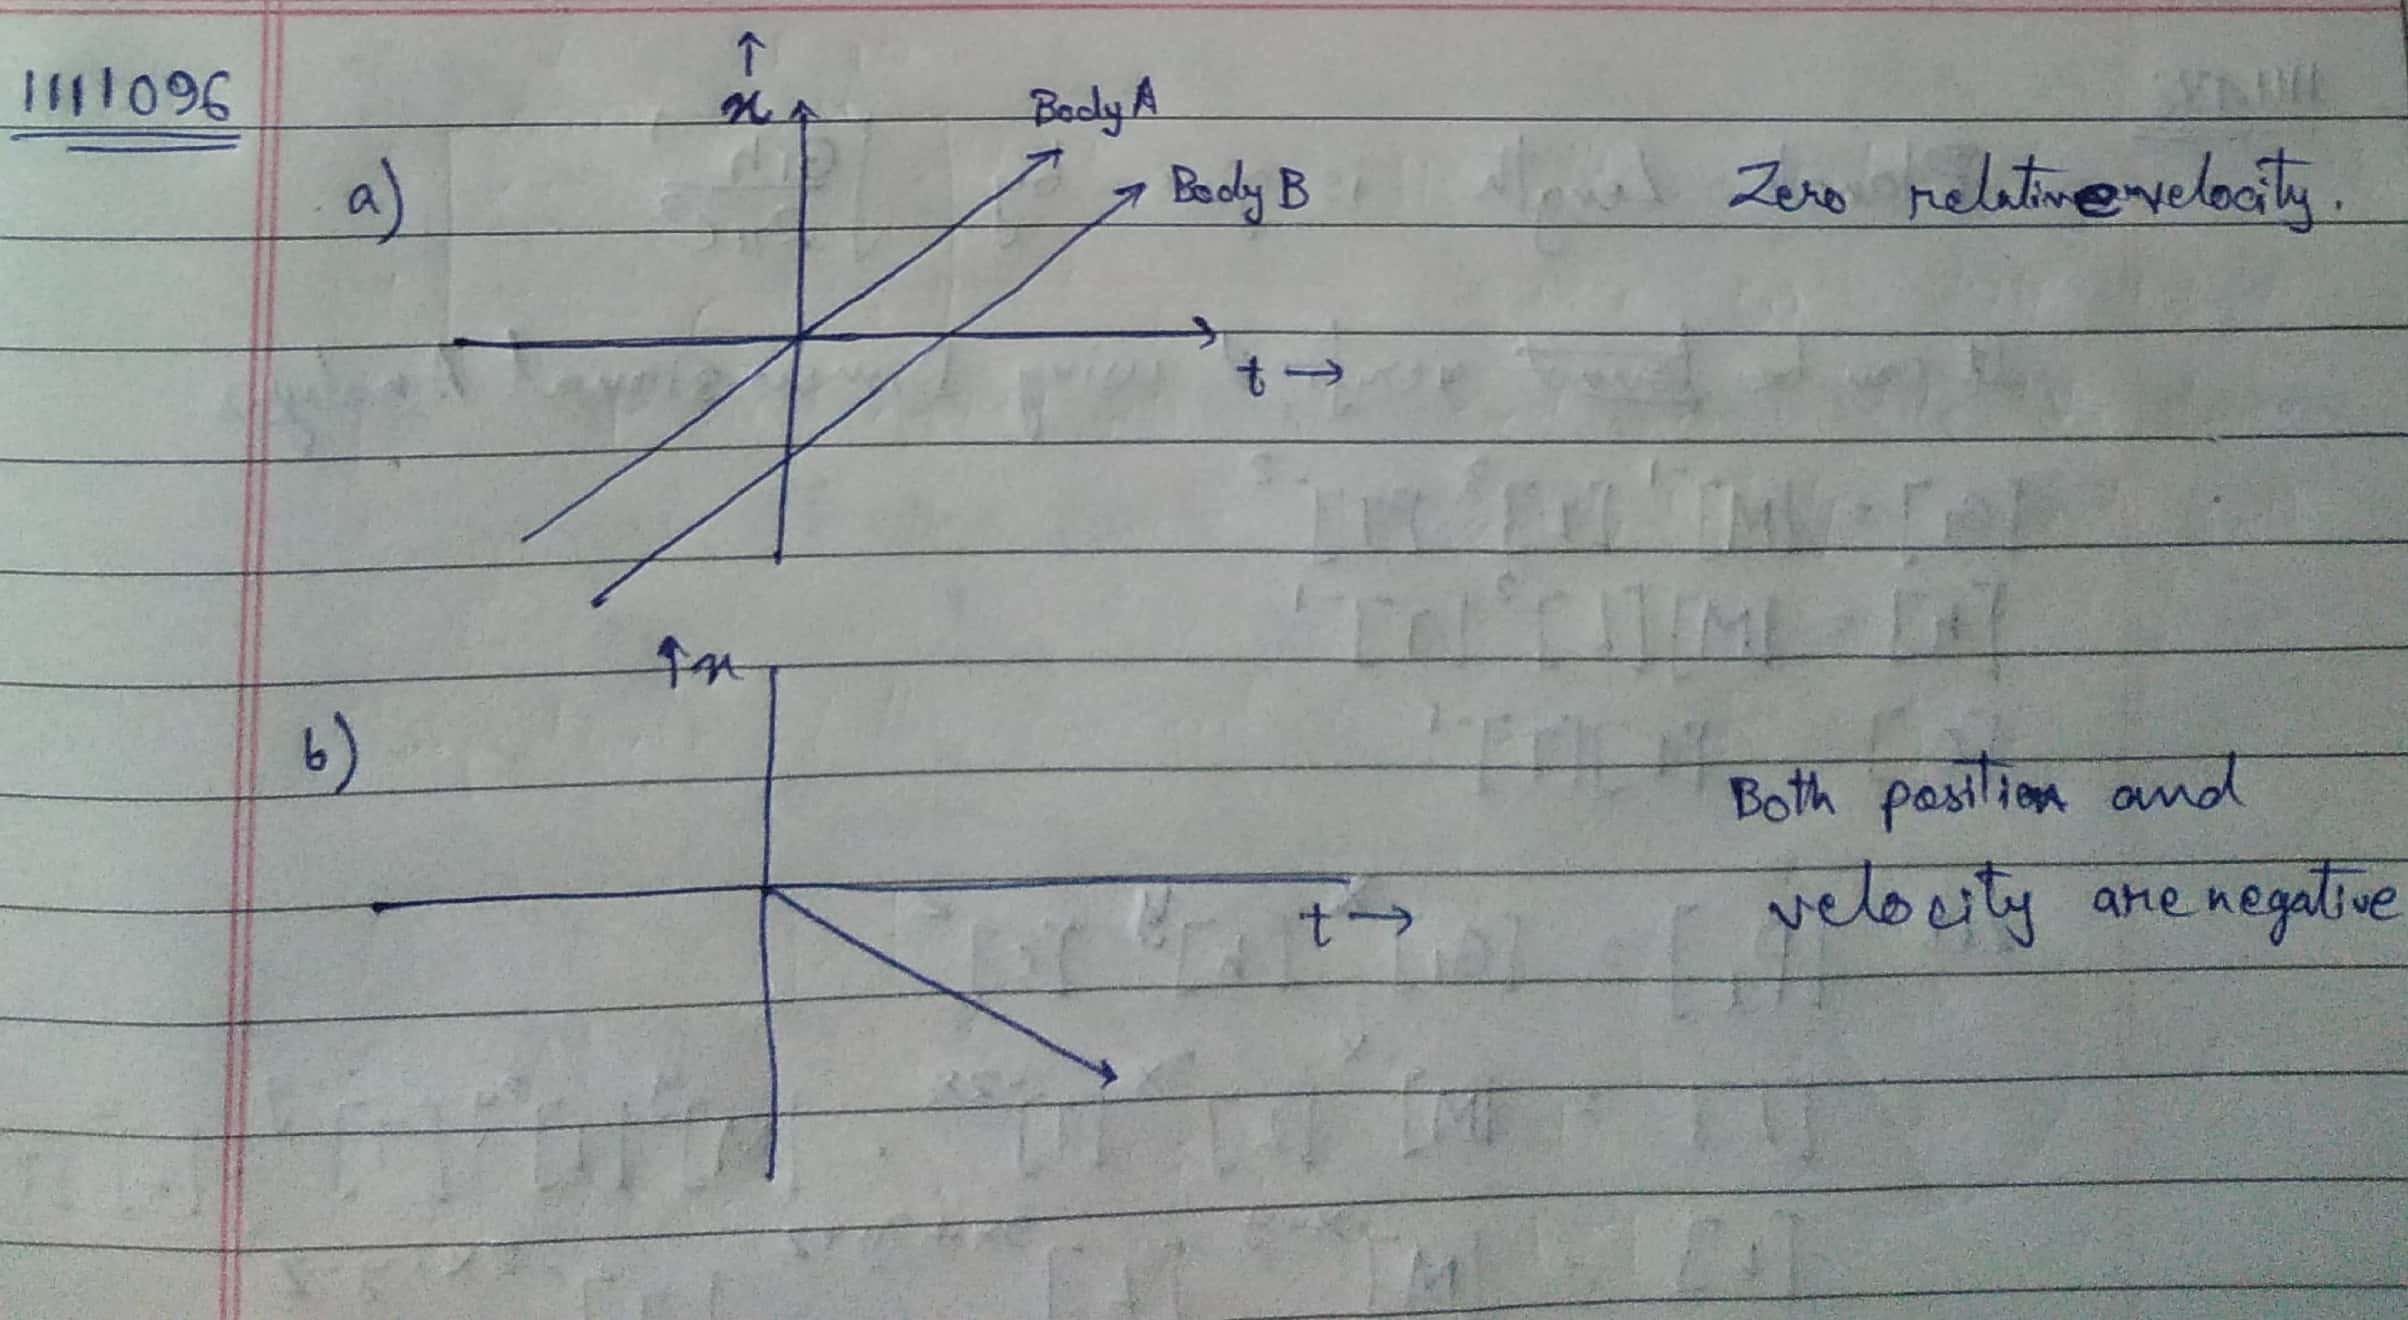 Draw The Position Time Graph For A Two Toppr